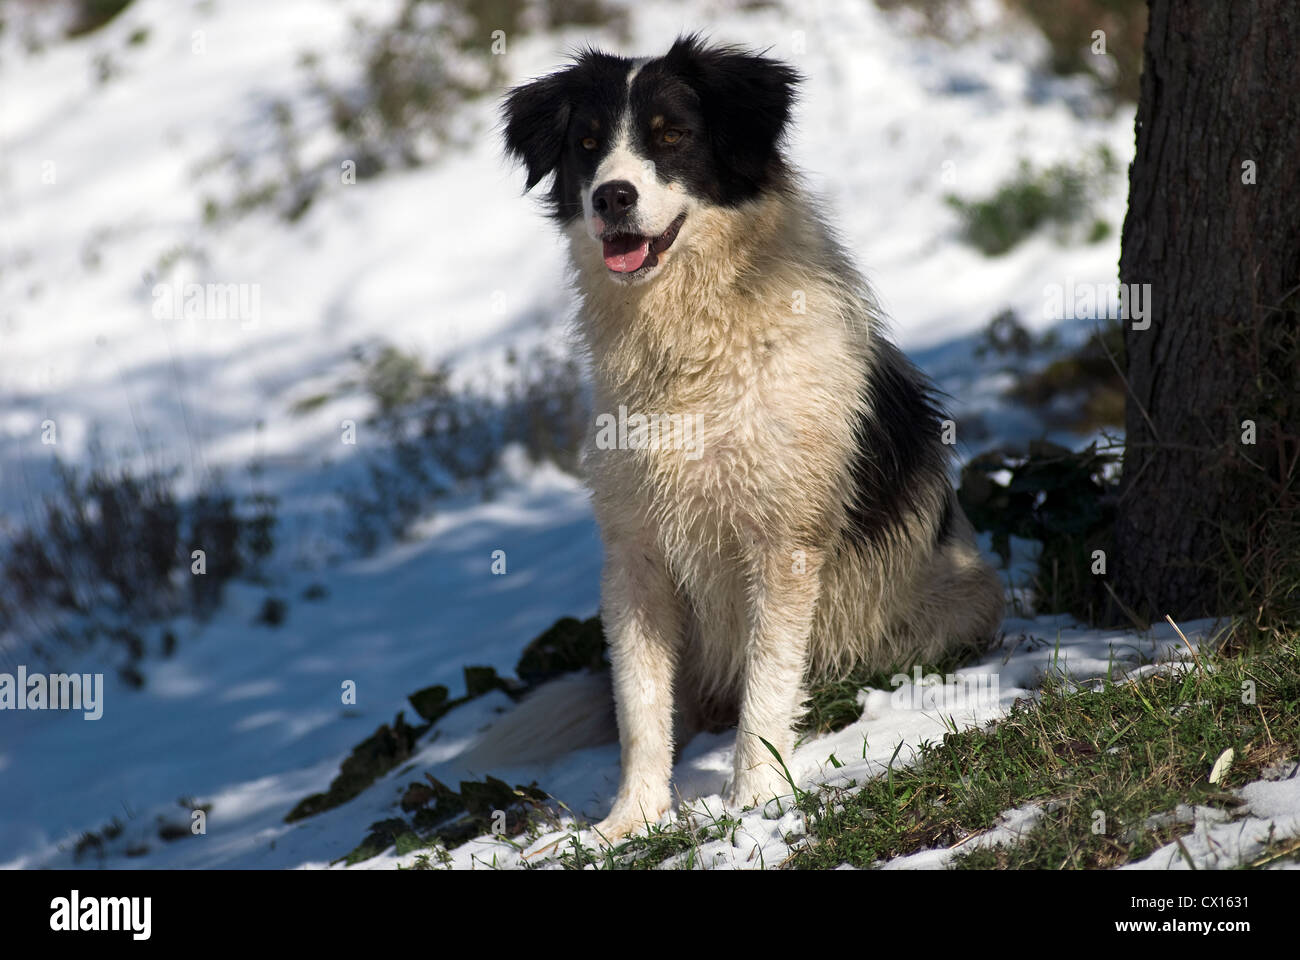 Greek Shepherd sitting in snow - Stock Image